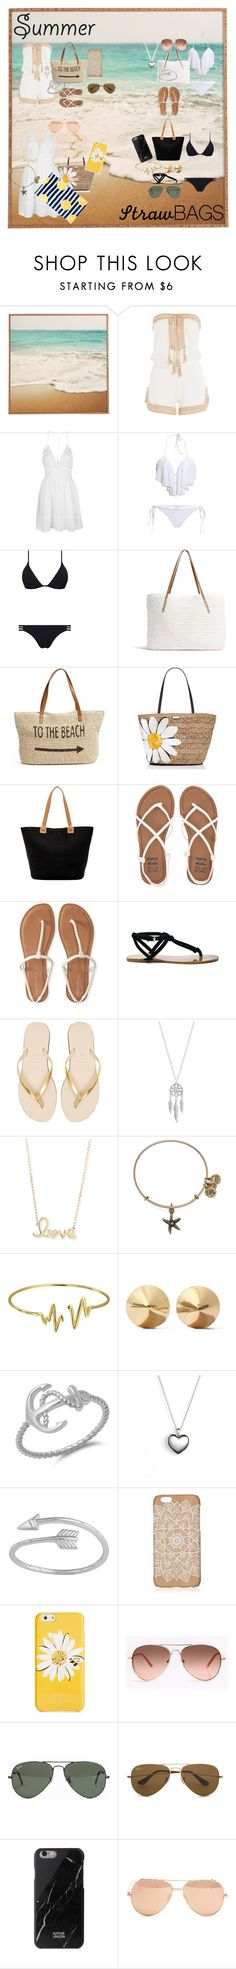 """""""Summer Straw Bag"""" by livyhiggins ❤ liked on Polyvore featuring Anna Kosturova, Topshop, Melissa Odabash, G.H. Bass & Co., Straw Studios, Kate Spade, Magid, Billabong, Aéropostale and Sole Society"""